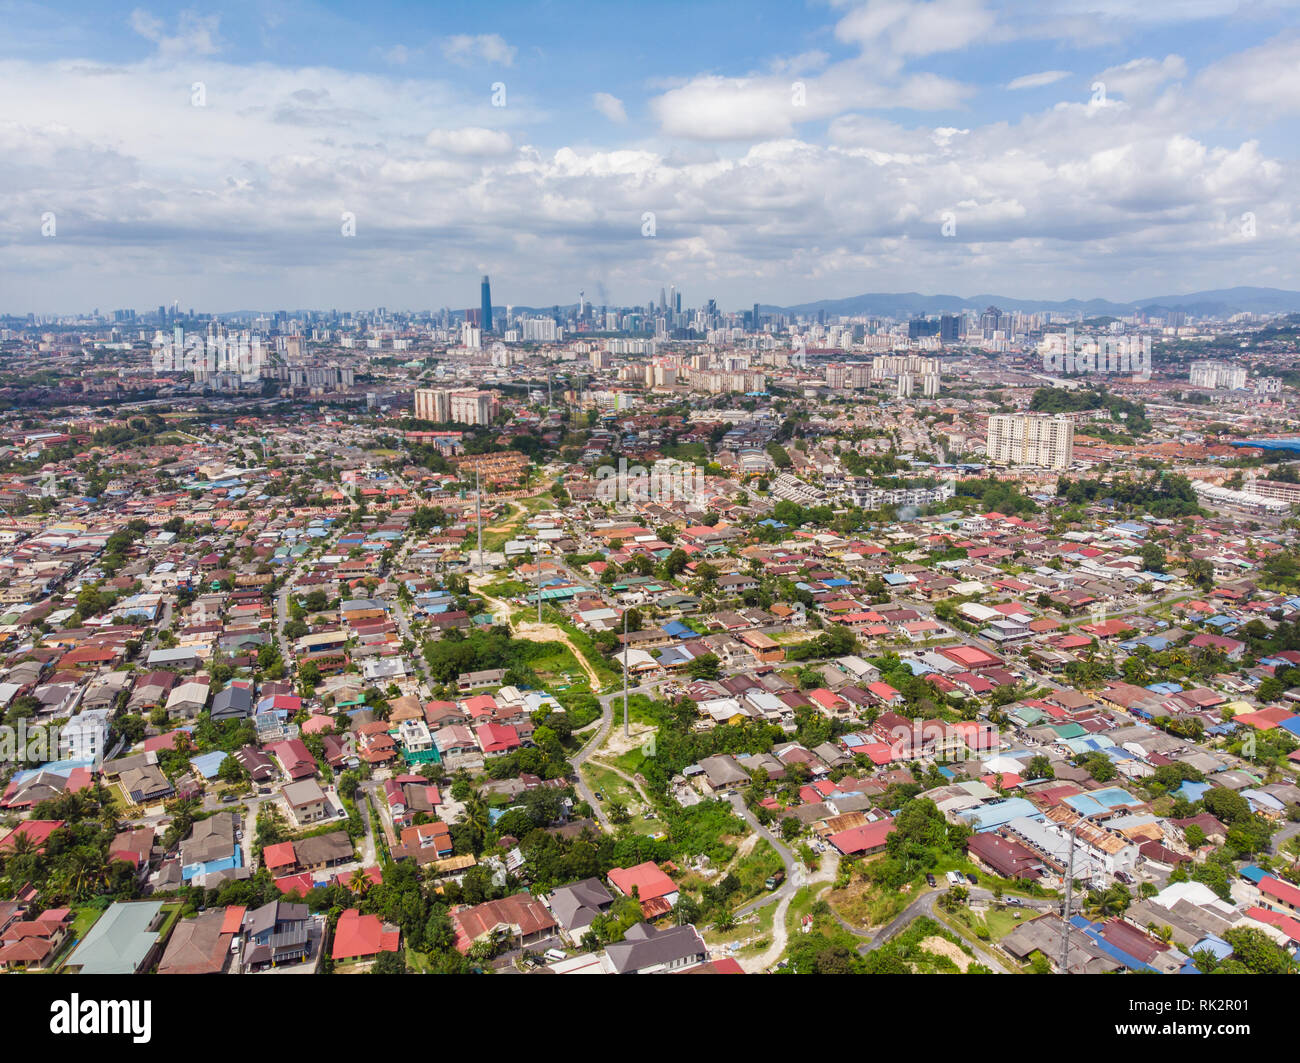 Panorama of all of Kuala Lumpur from the far outskirts of the city. Malaysia. Drone aerial footage. - Stock Image